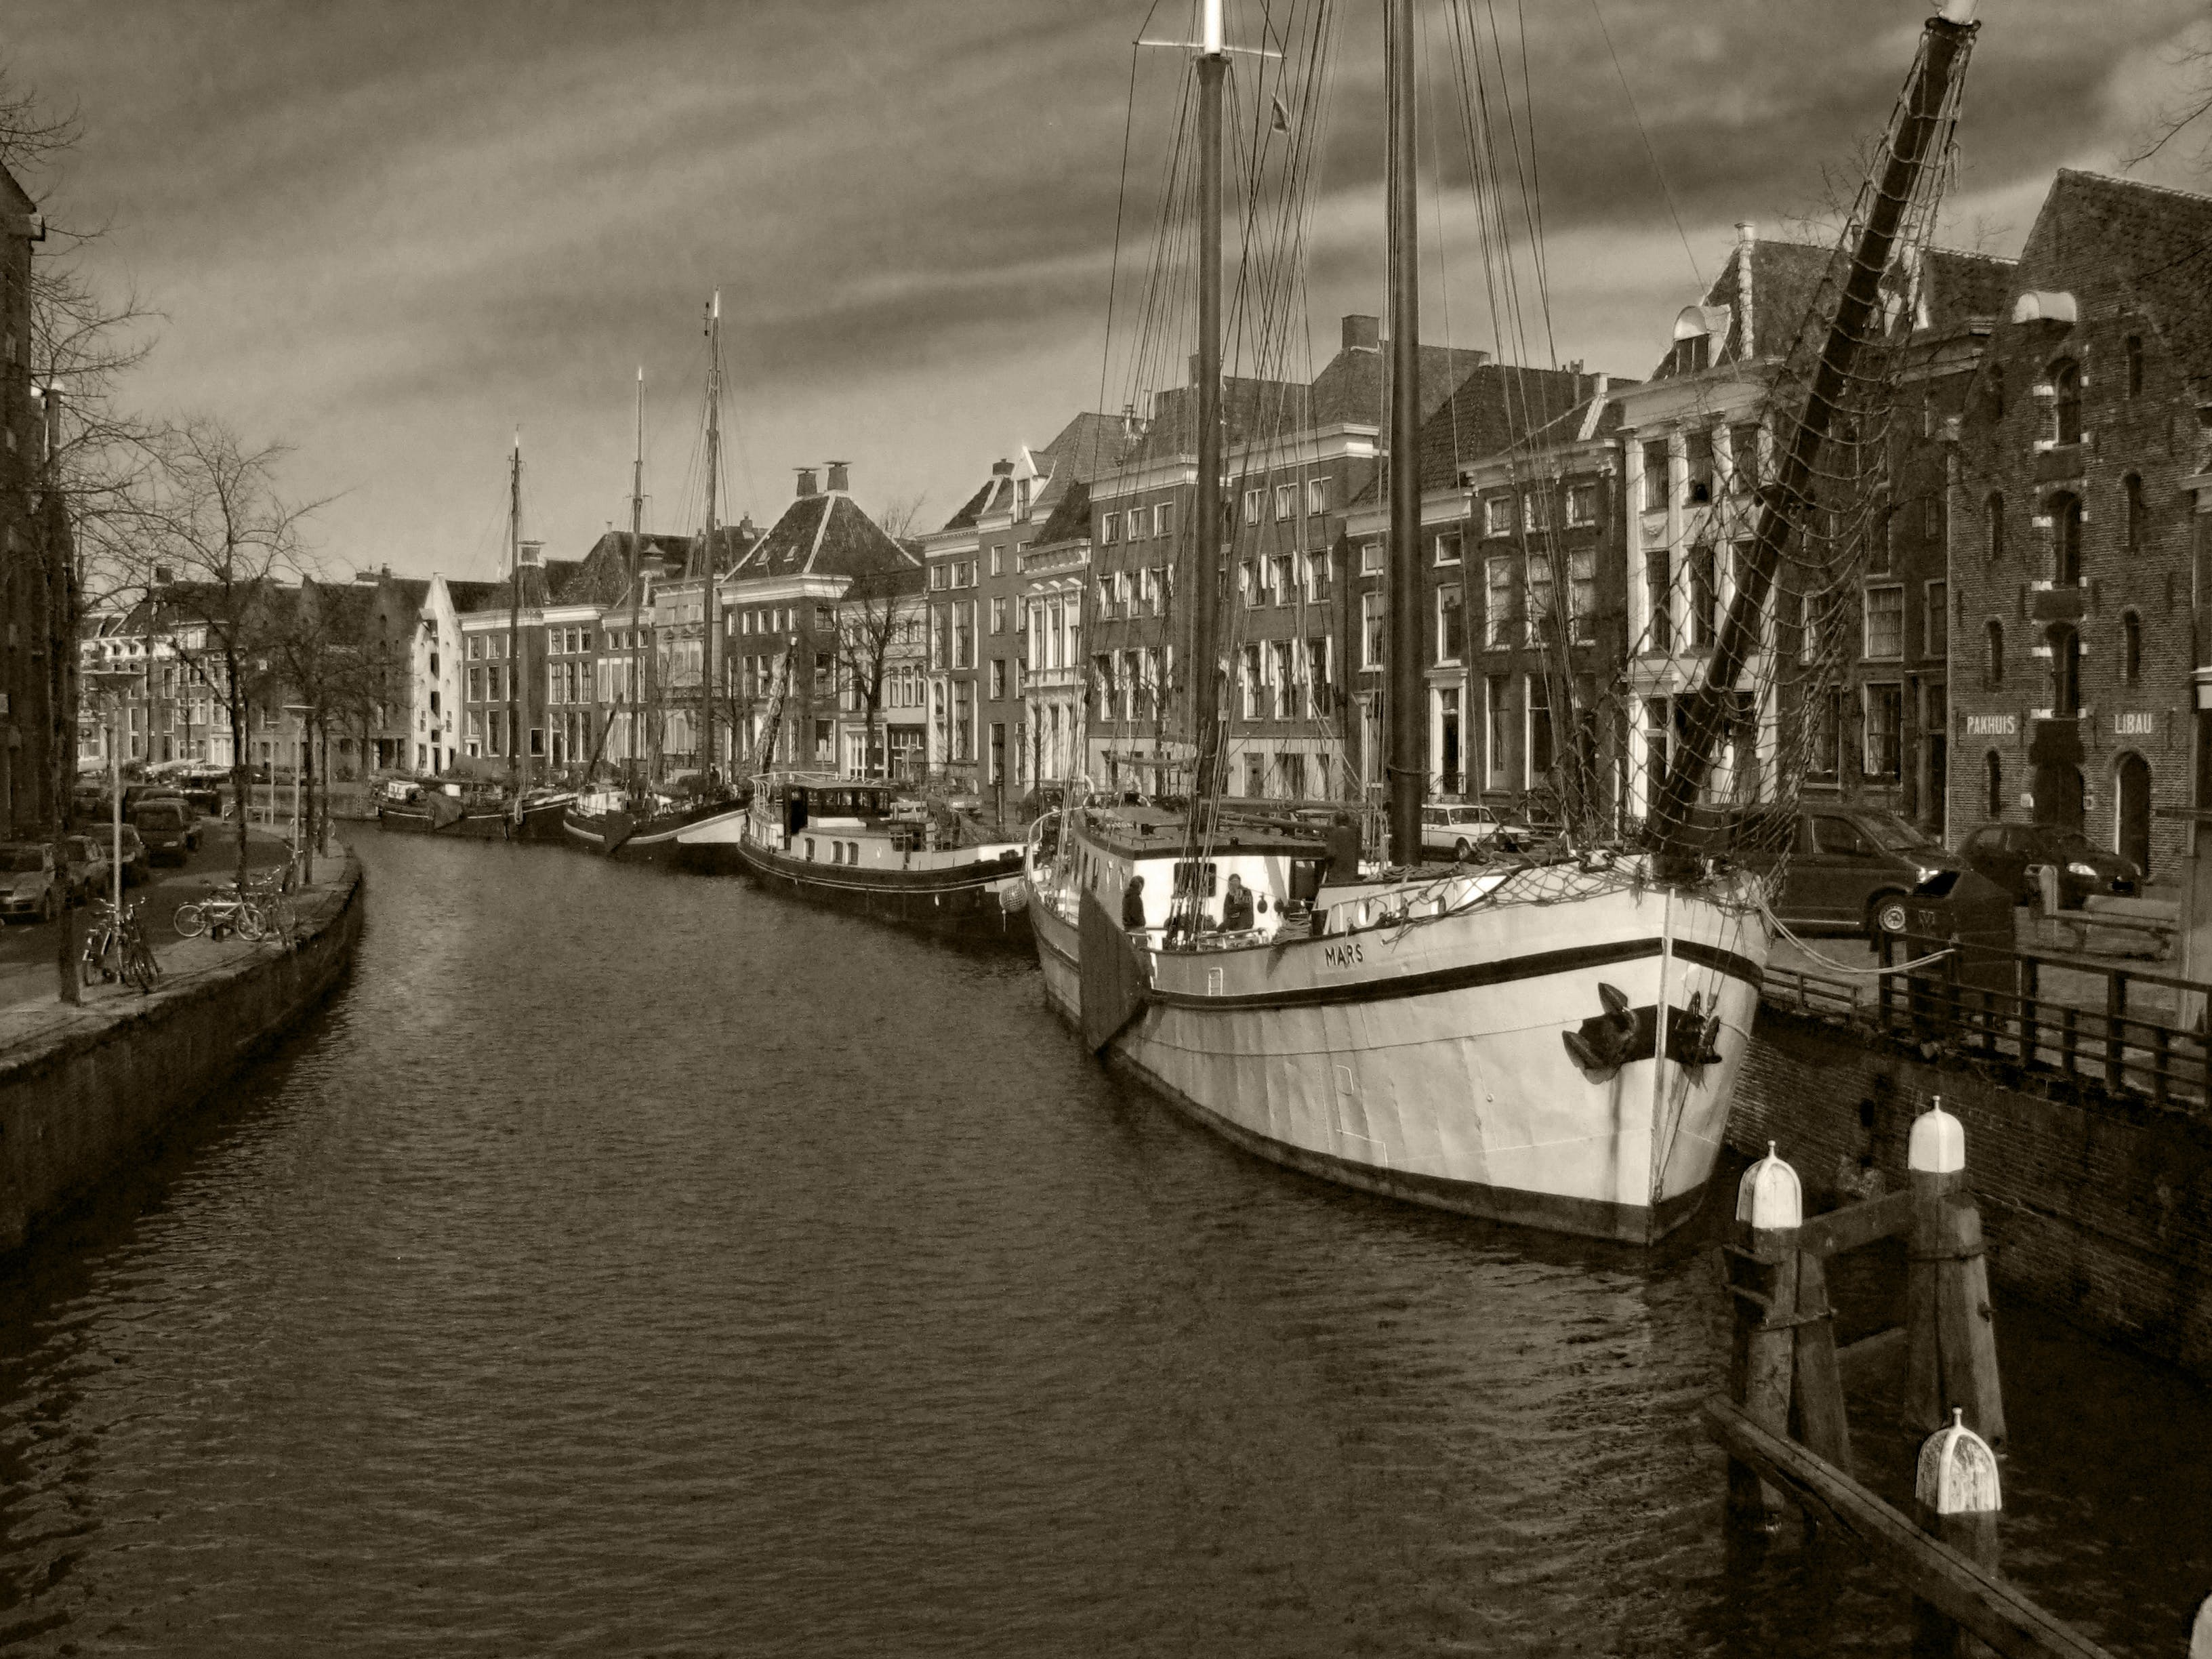 Grayscale Photography of Boats Near Buildings